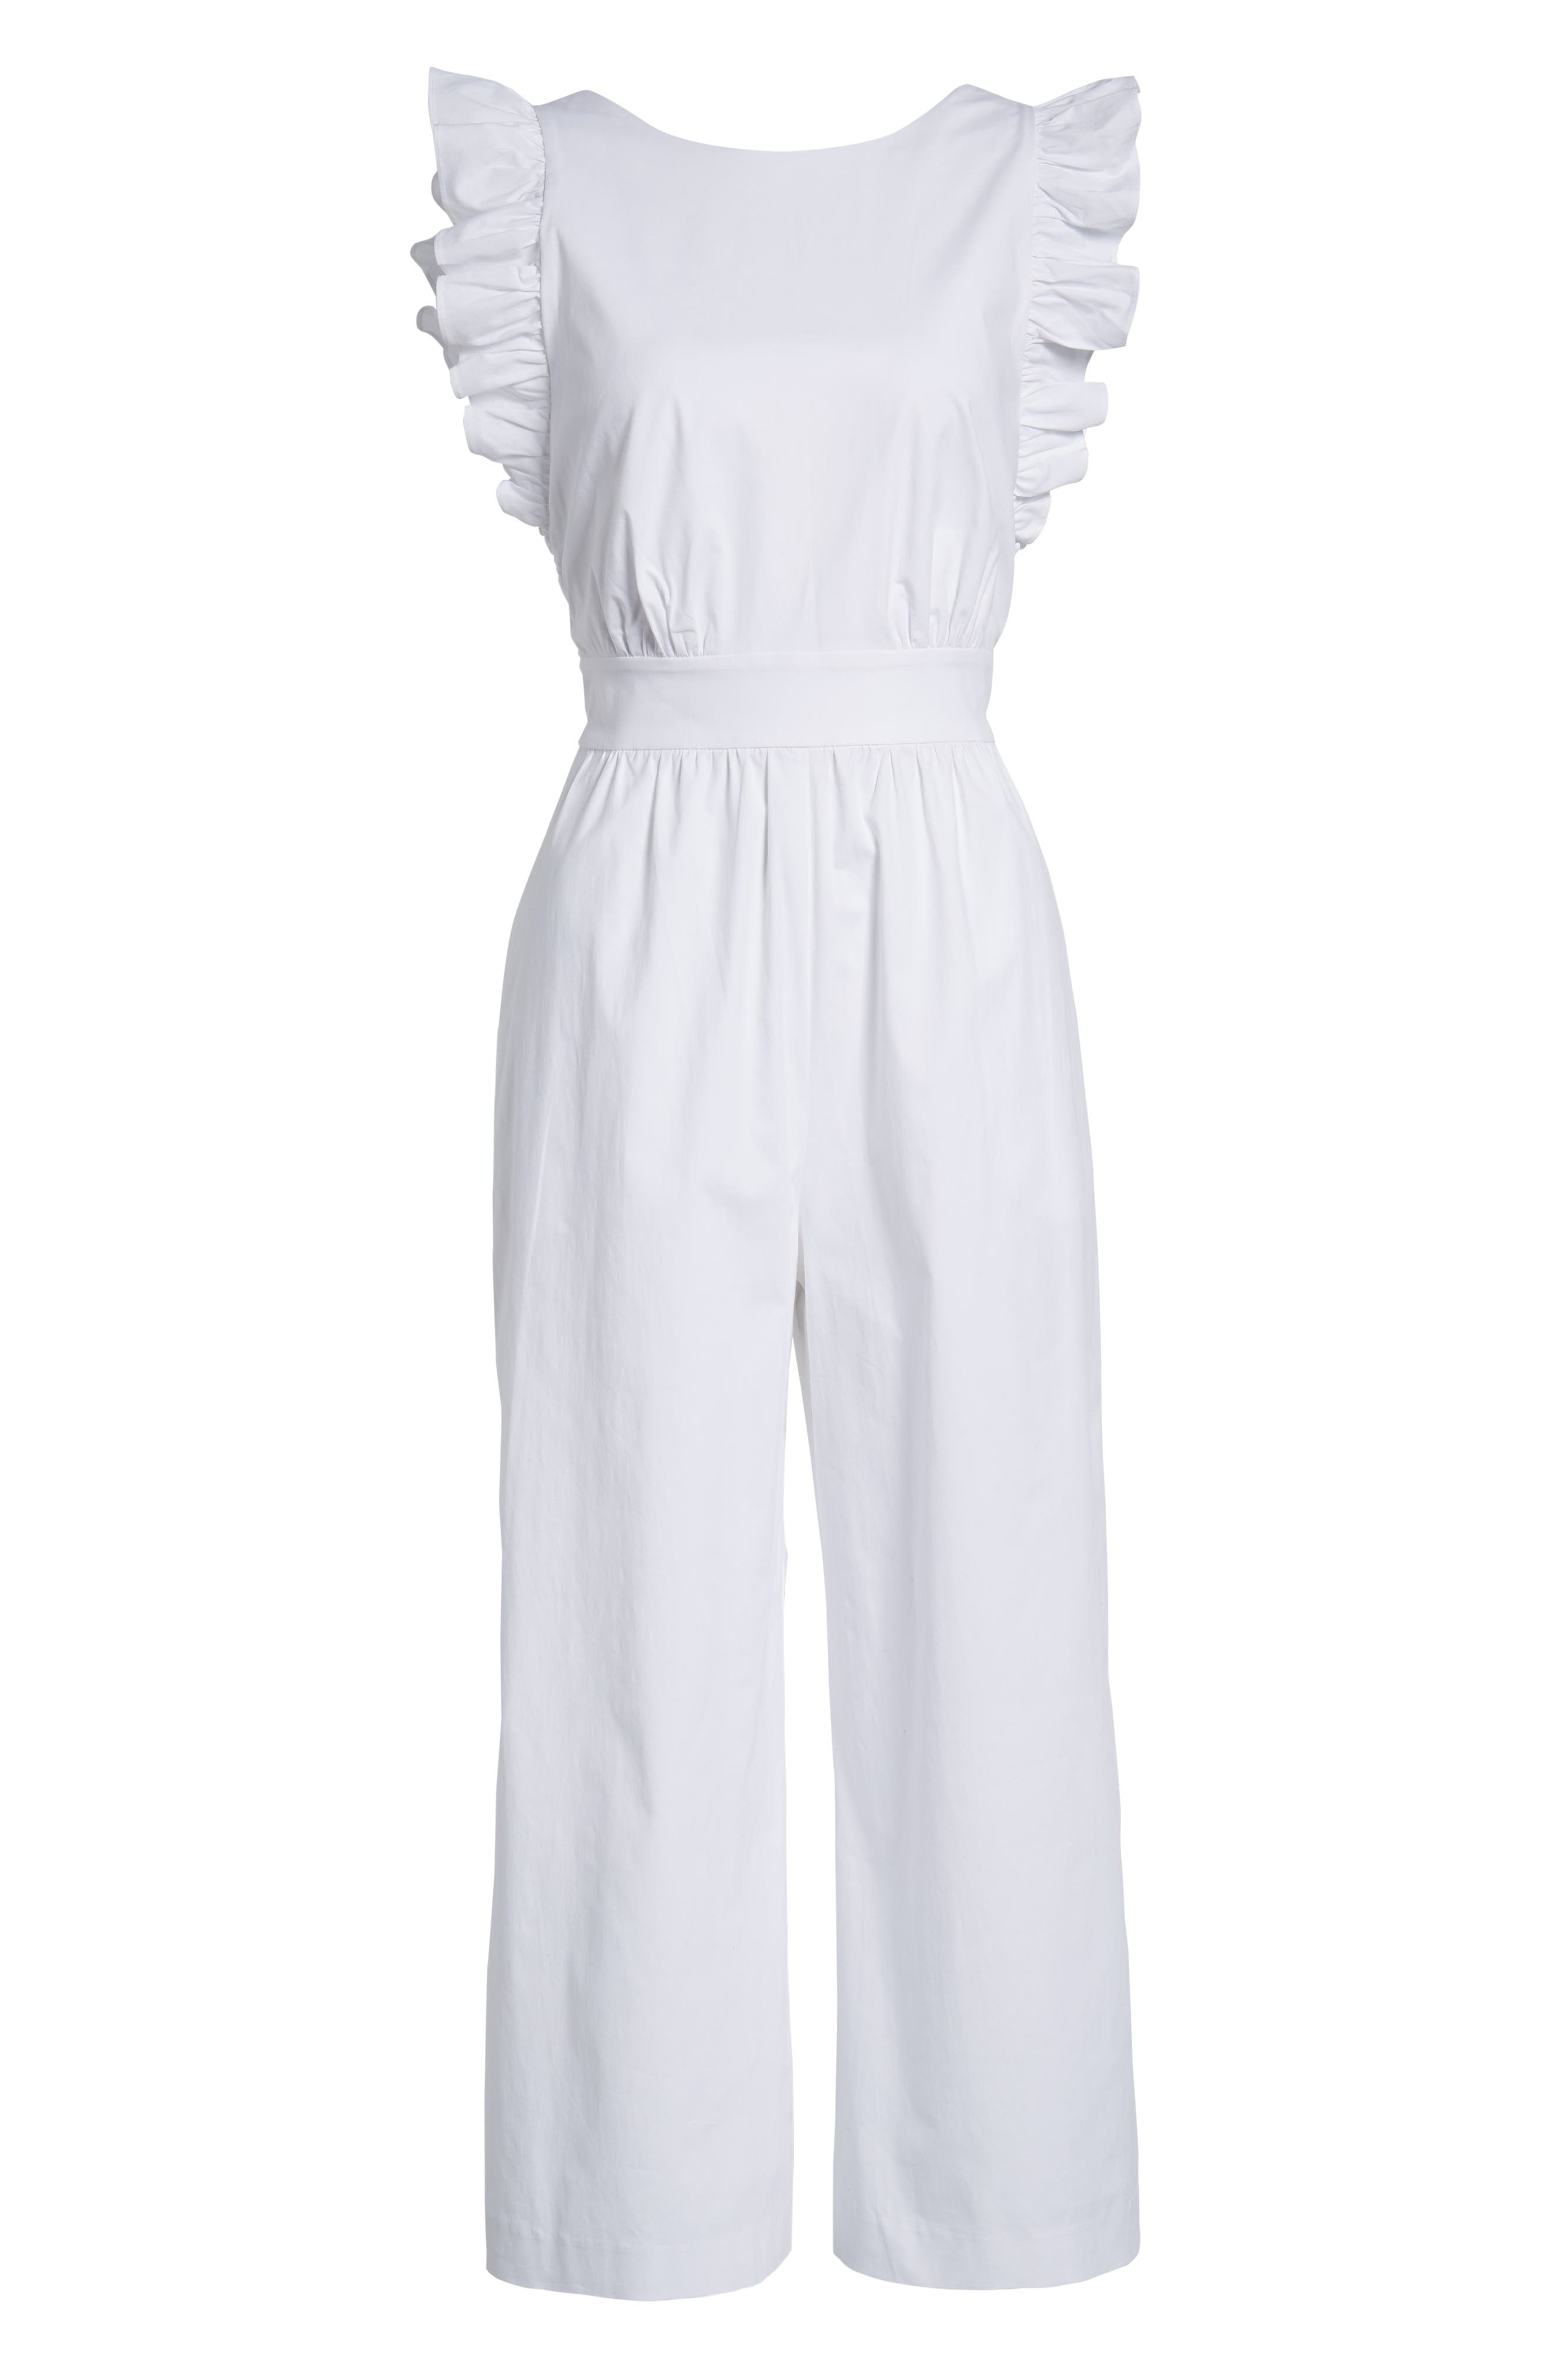 Ruffle Sleeve Crop Jumpsuit,                             Alternate thumbnail 7, color,                             100